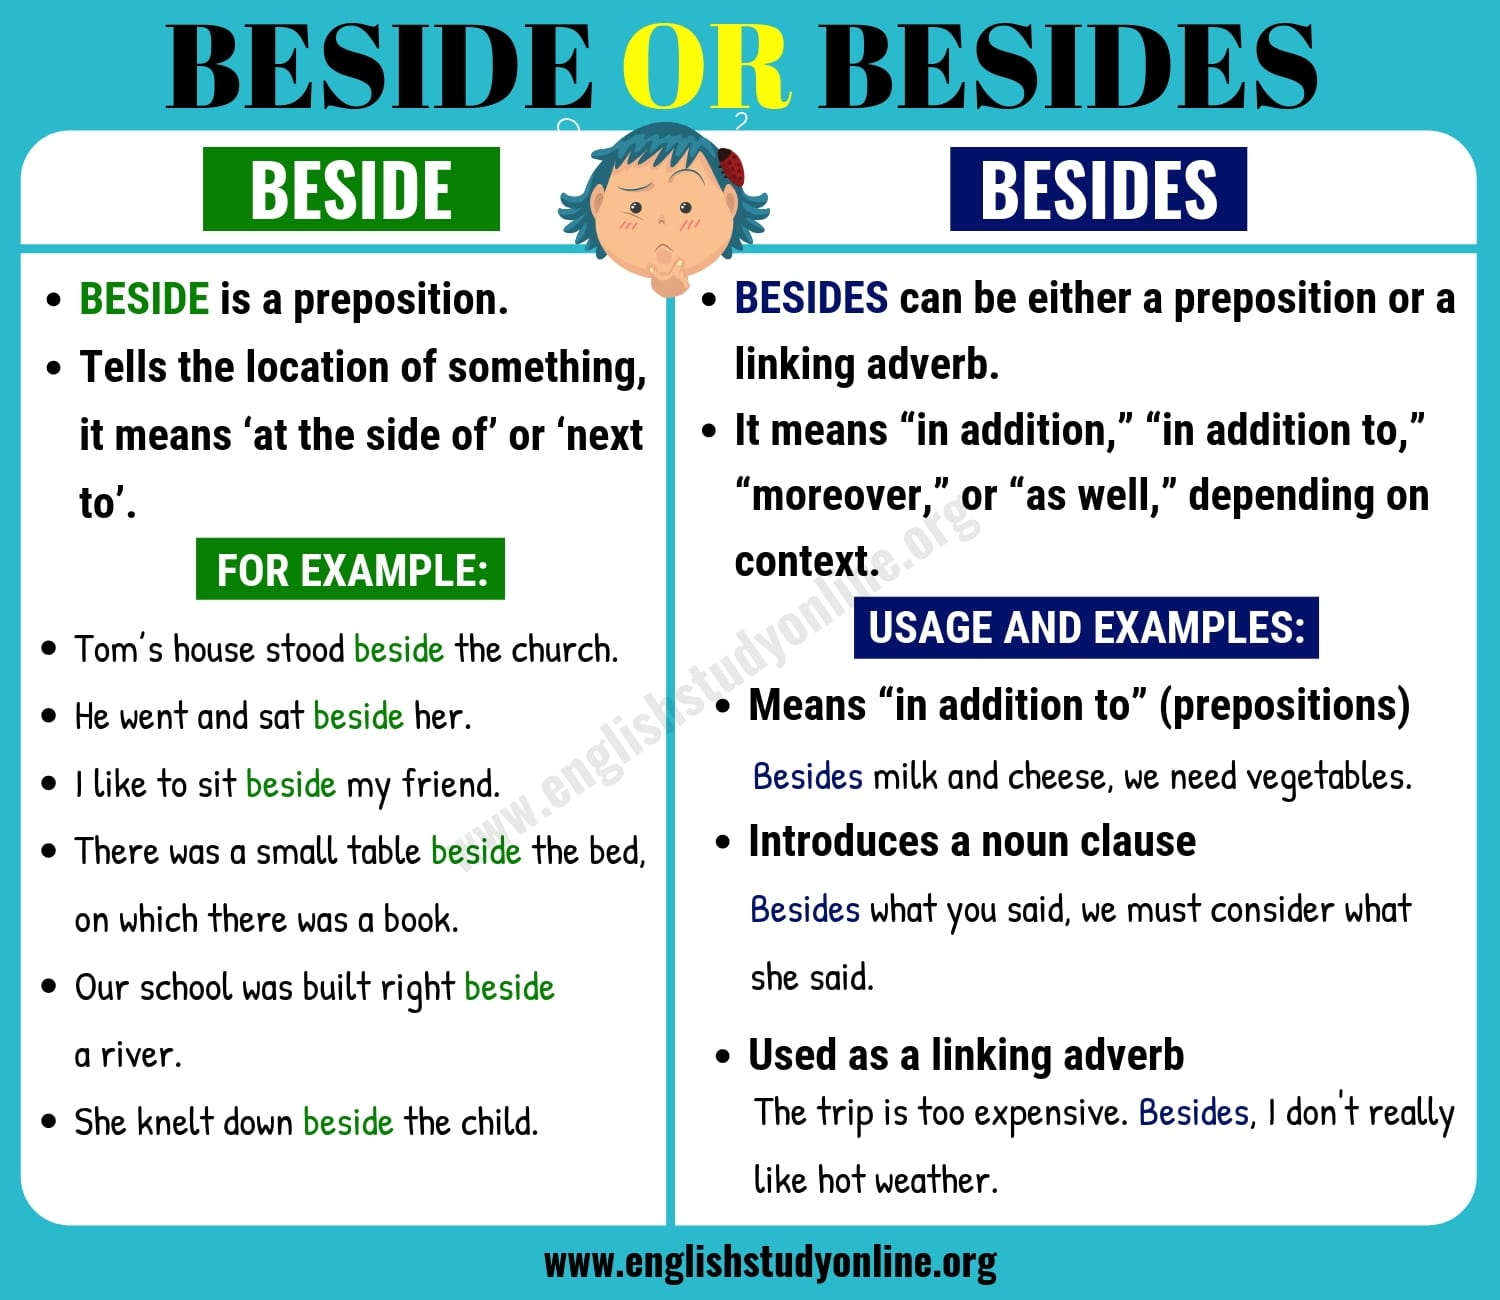 Beside or Besides: What's the Difference? |nfographic